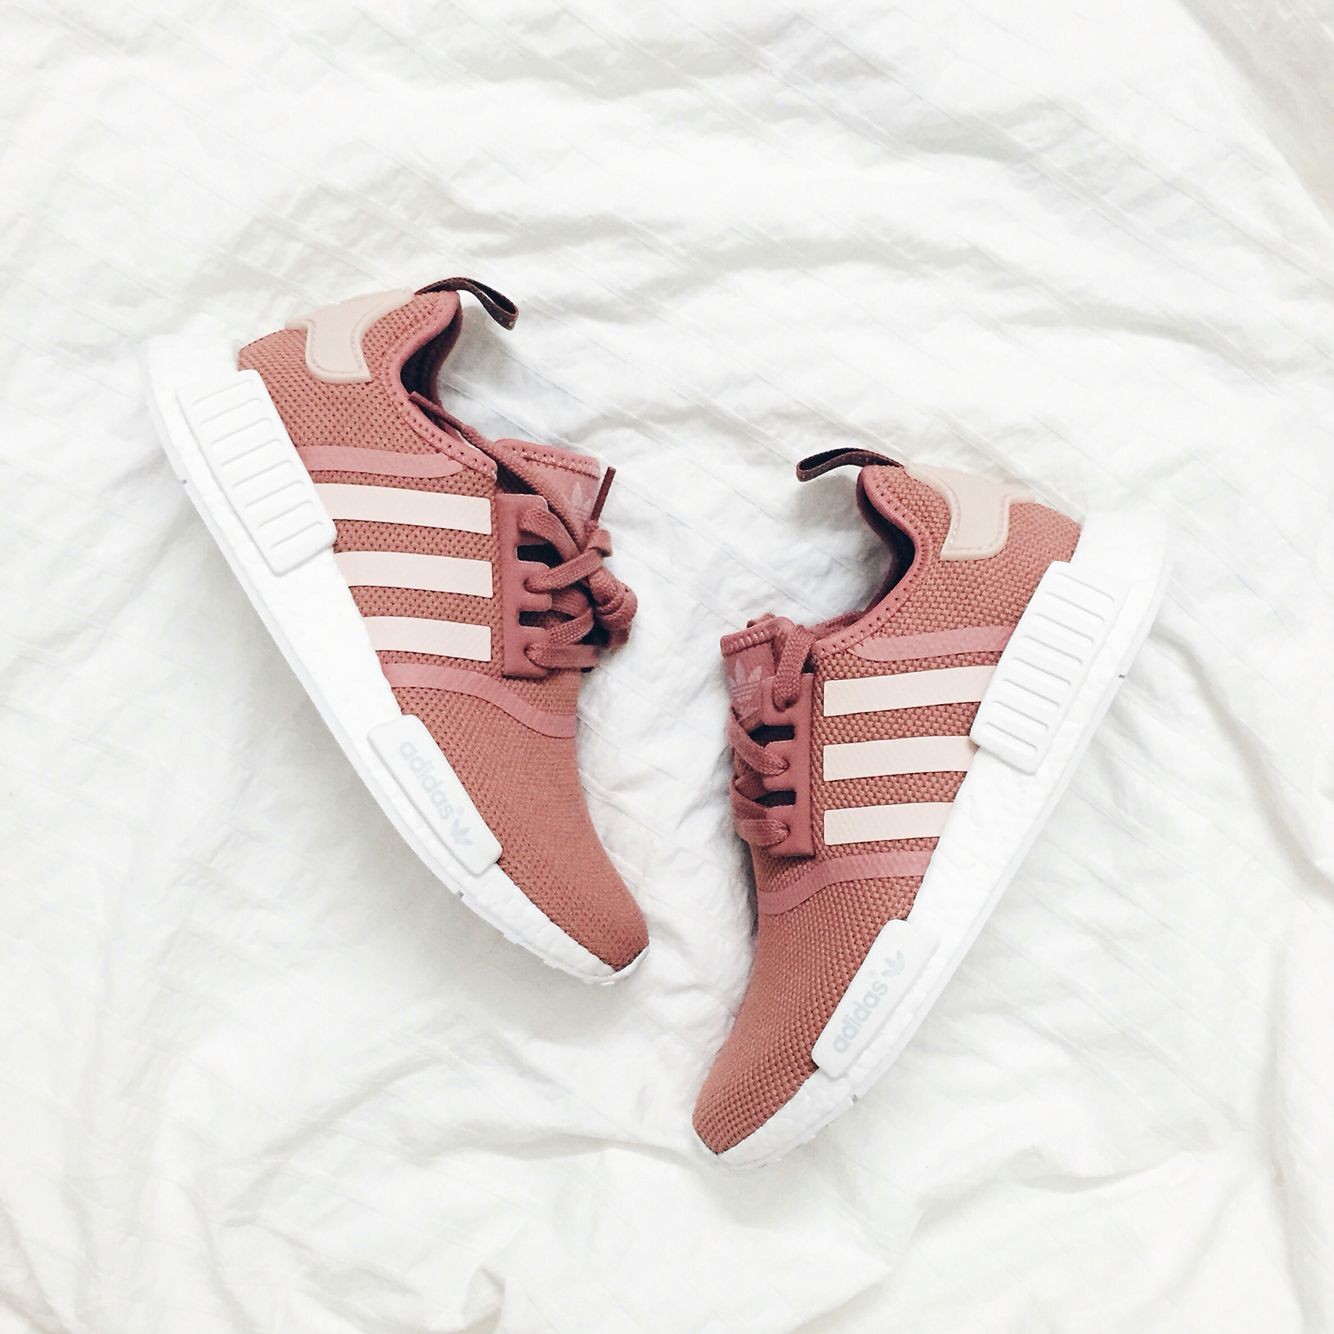 premium selection be843 9603d New kicks! \ Adidas NMD_R1 \ Raw Pink \ This will be my ...